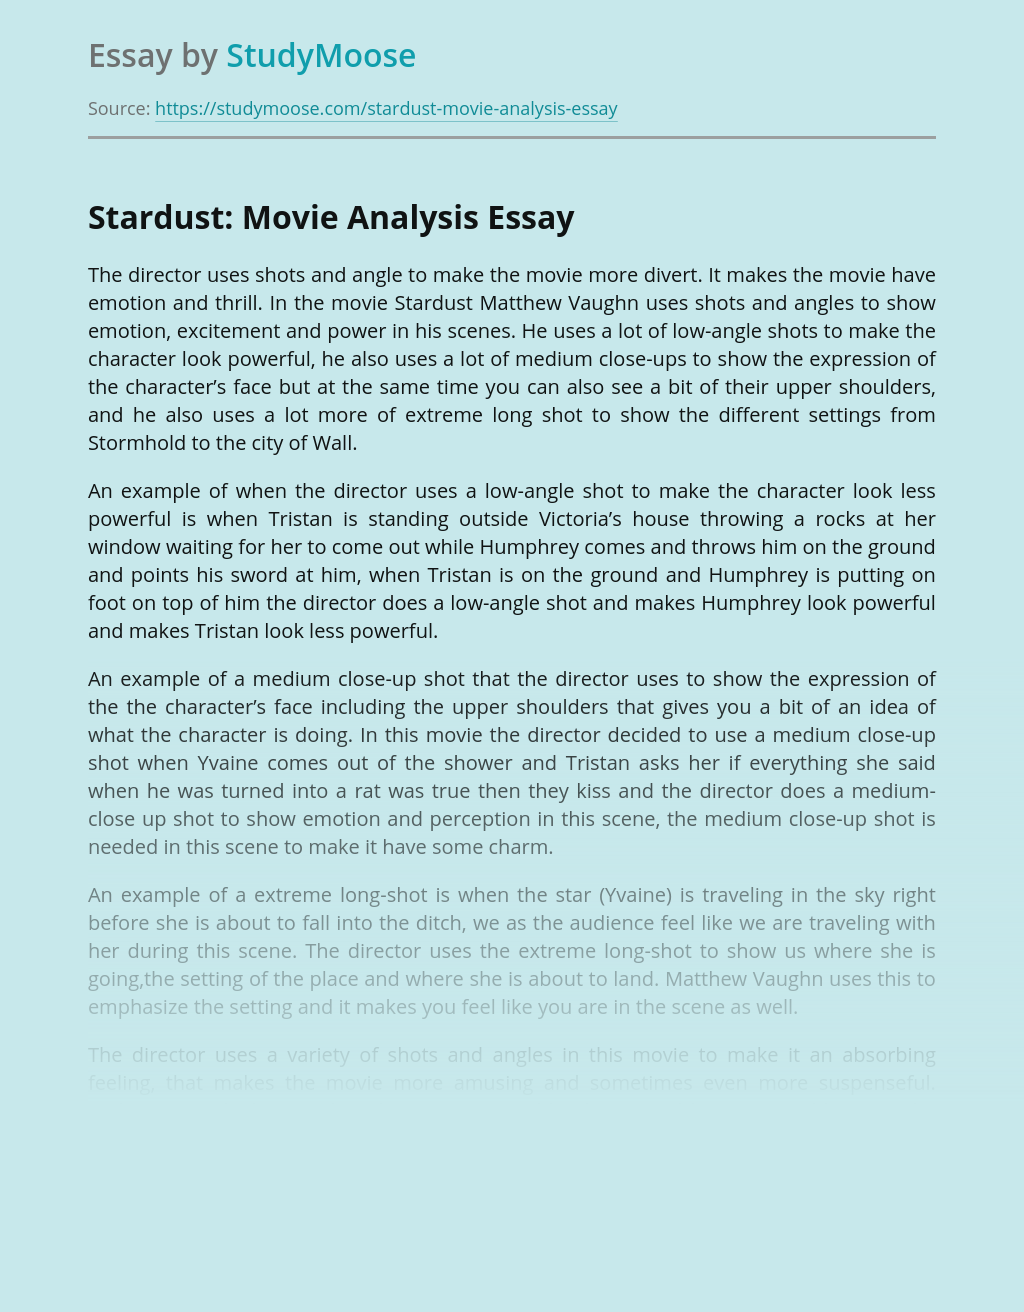 Stardust: Movie Analysis